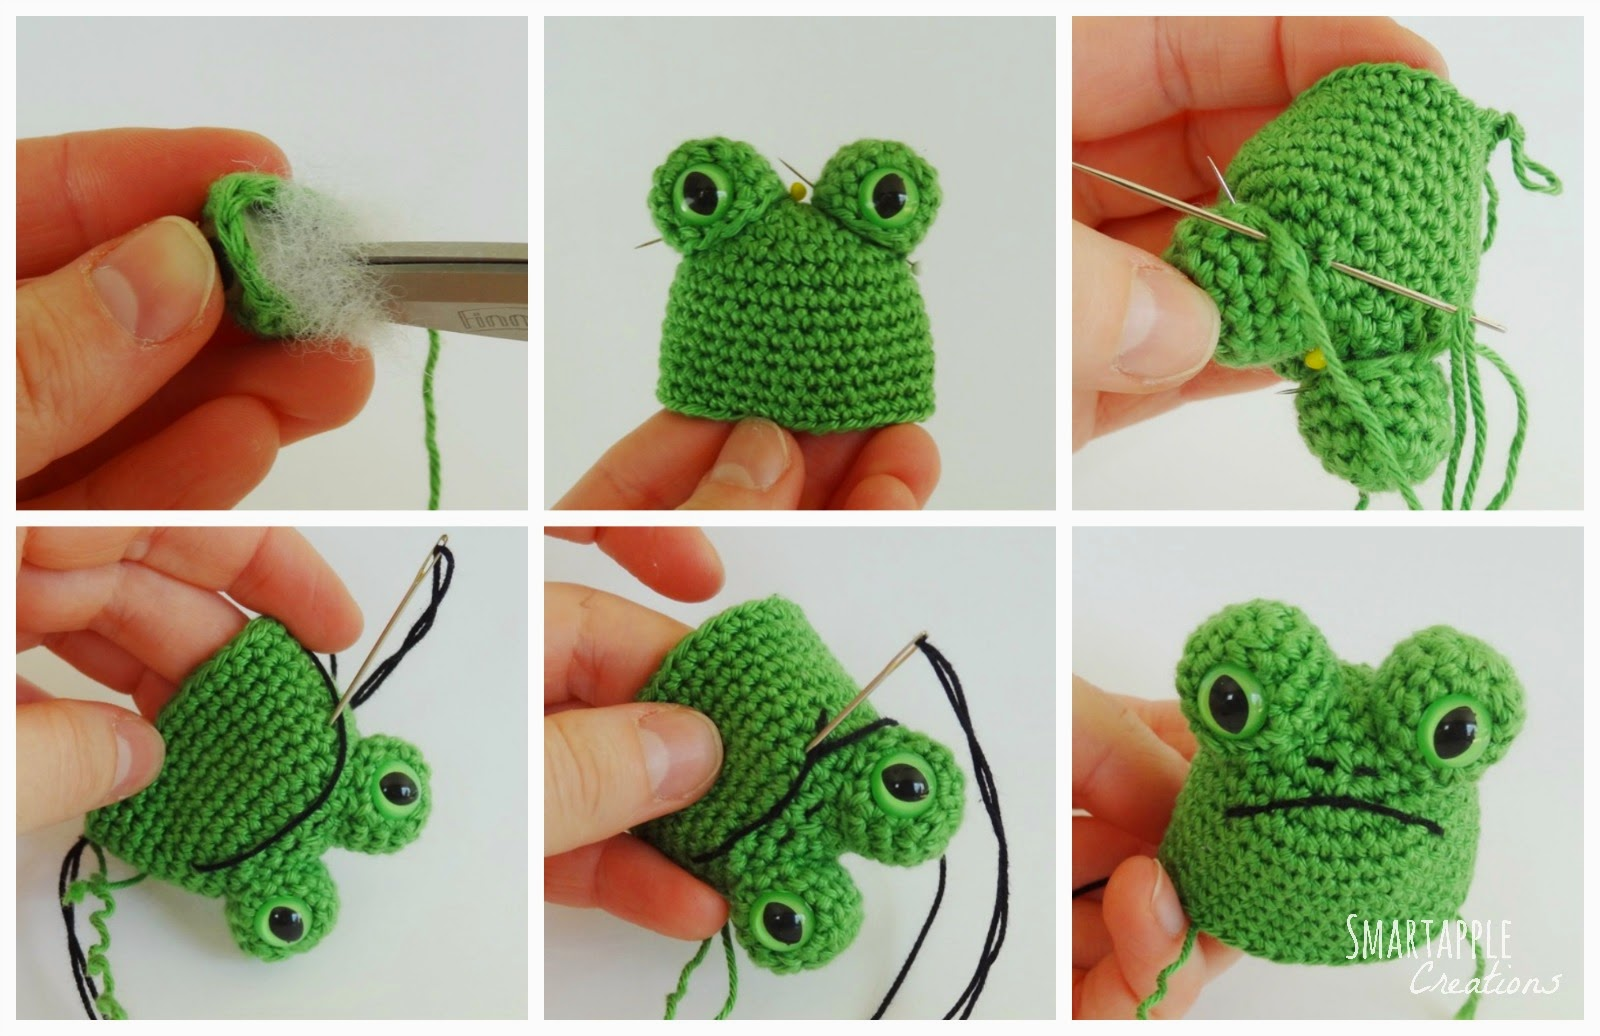 Eyes For Amigurumi : Smartapple creations amigurumi and crochet: free pattern fred